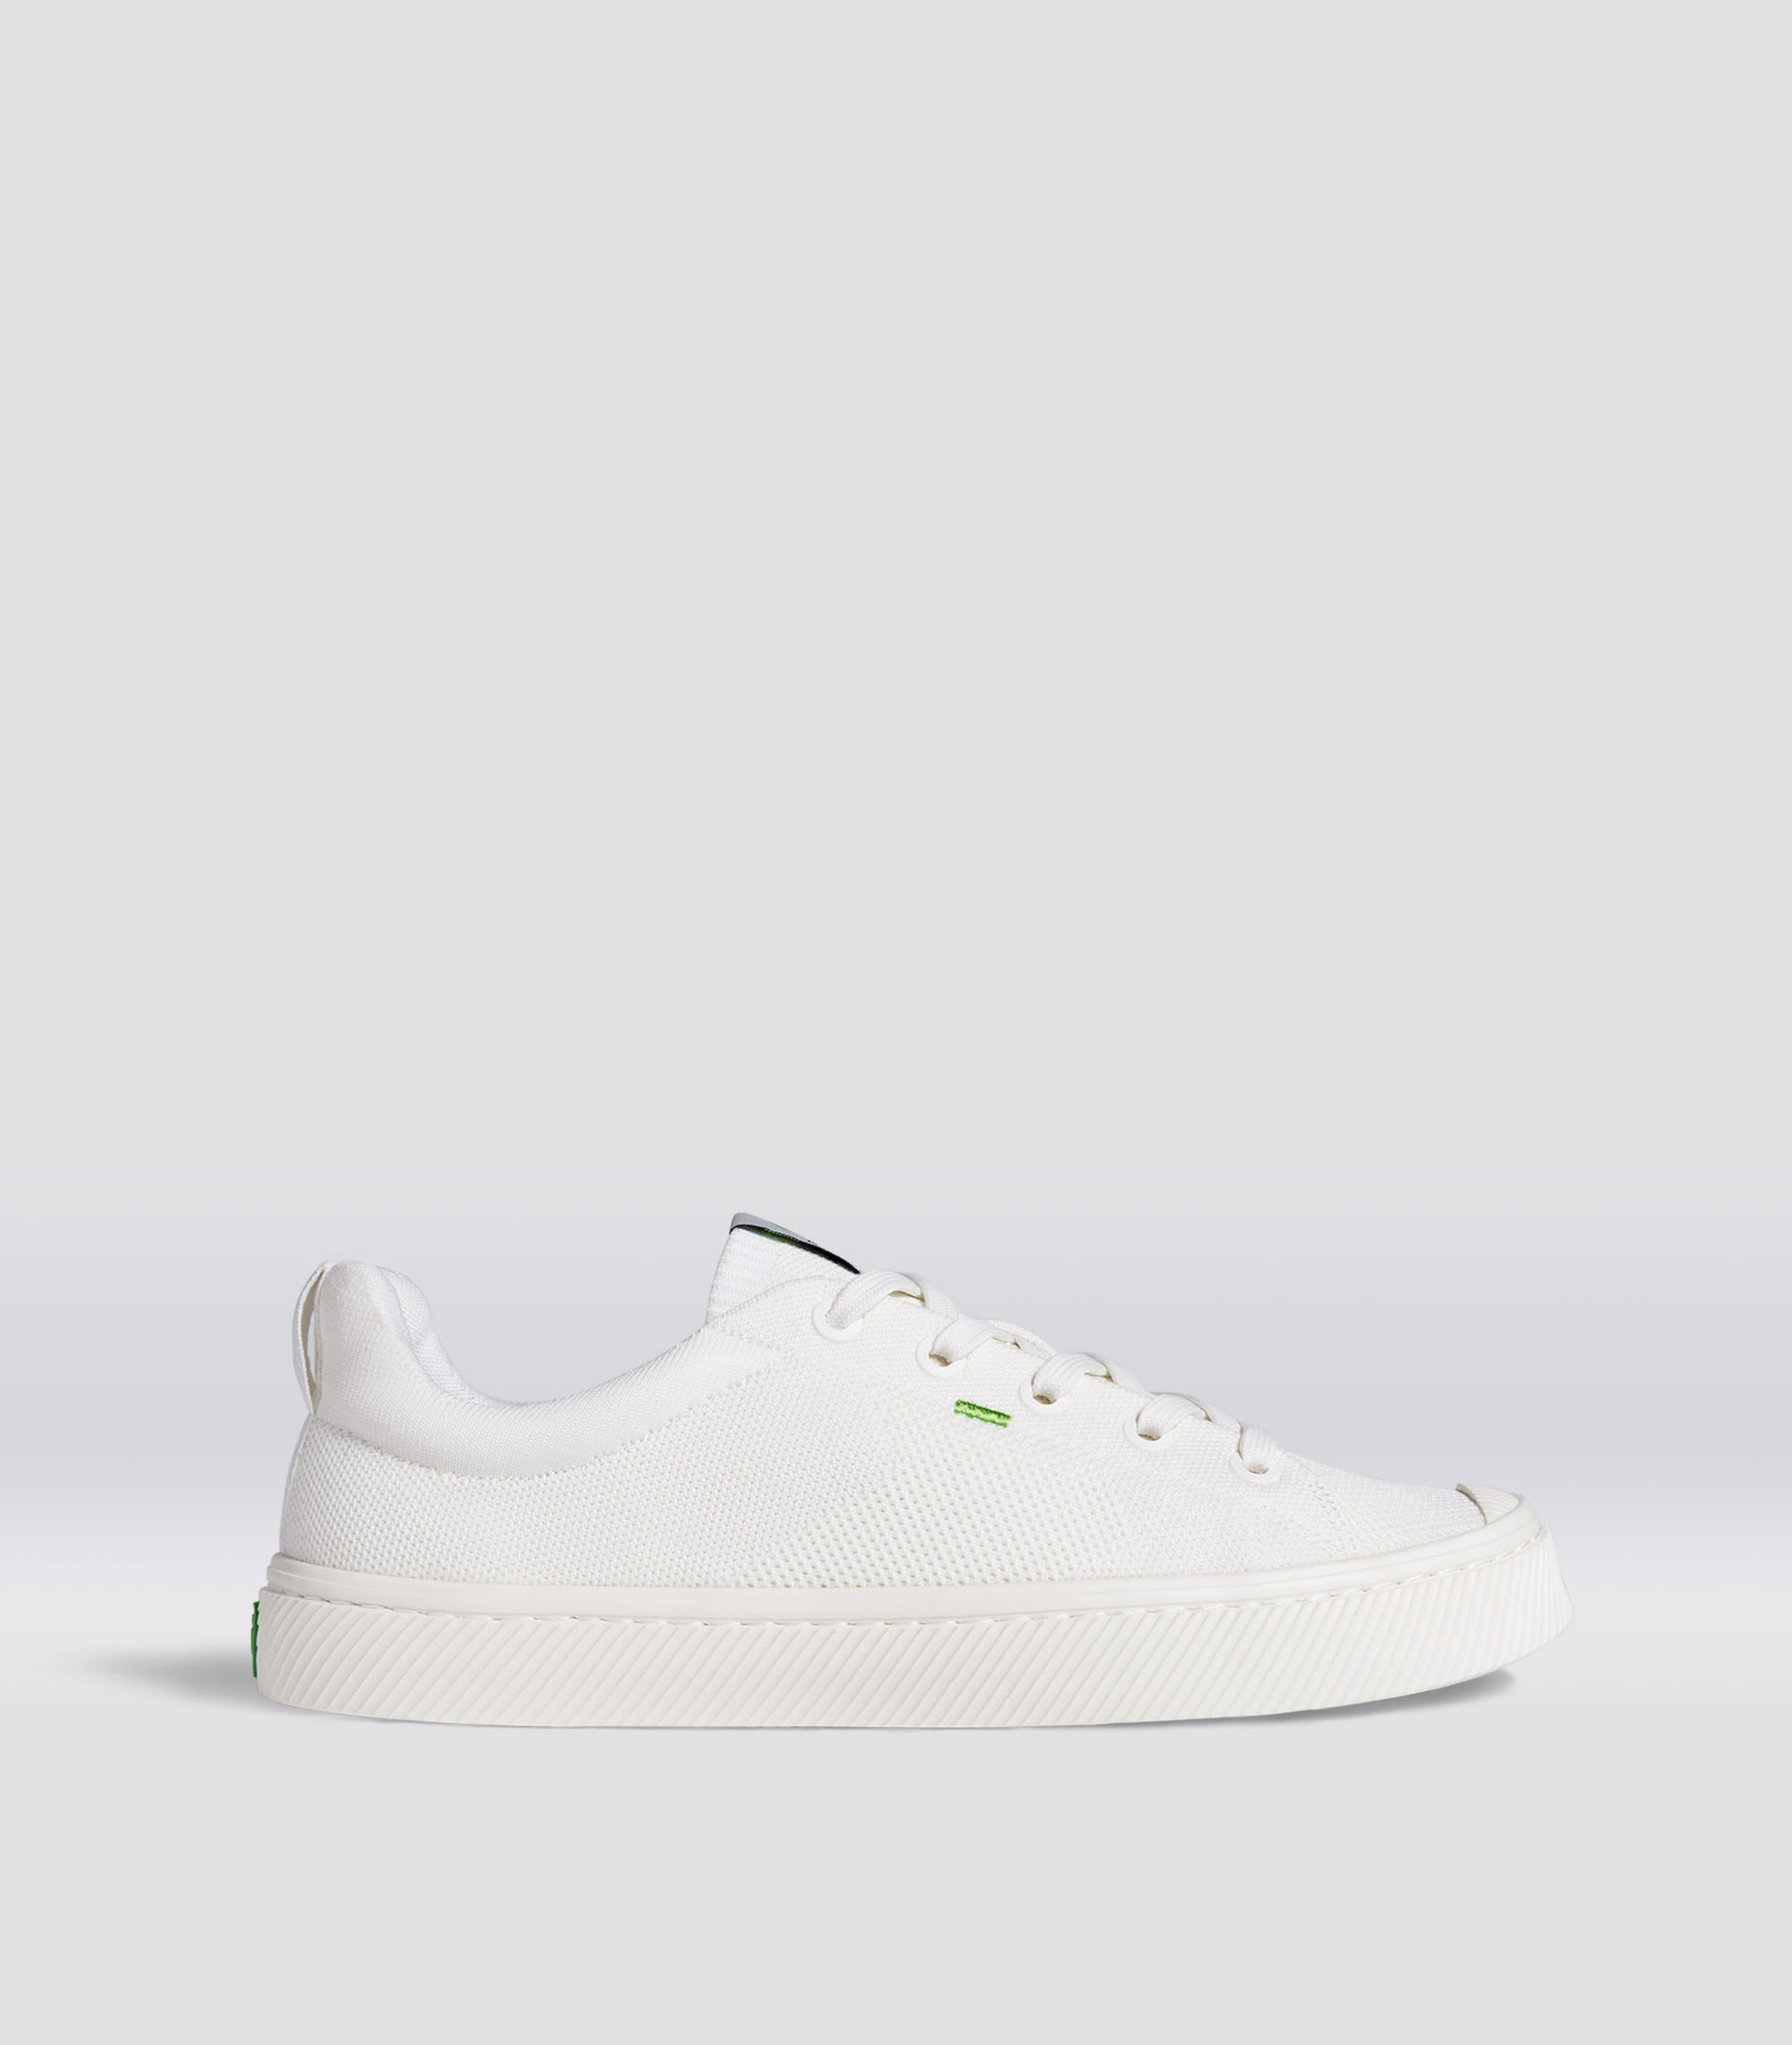 IBI Low Off-White Knit Sneaker Women